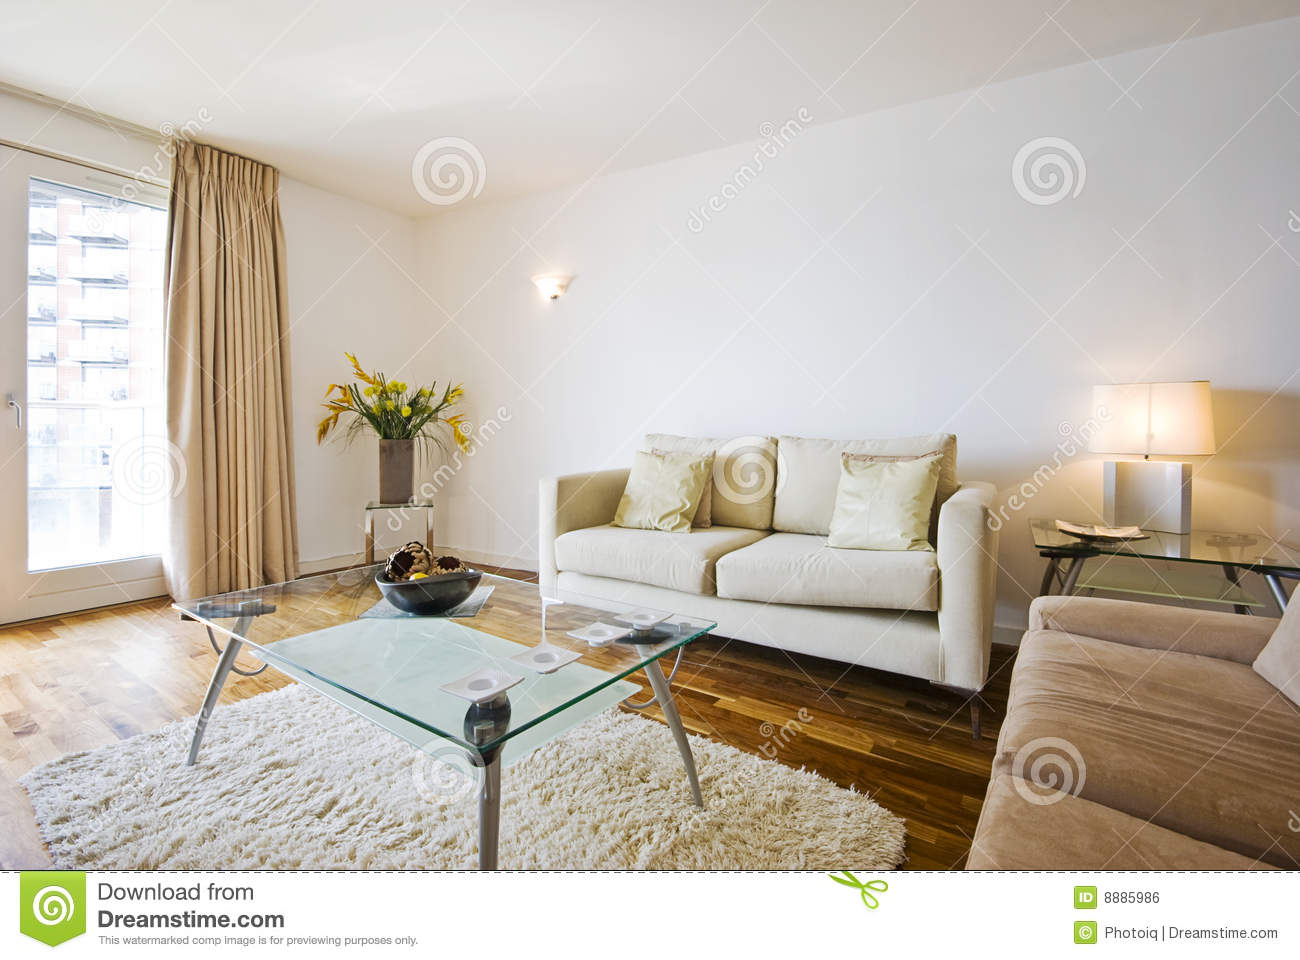 Smart living room royalty free stock image image 8885986 for Drawing room pics